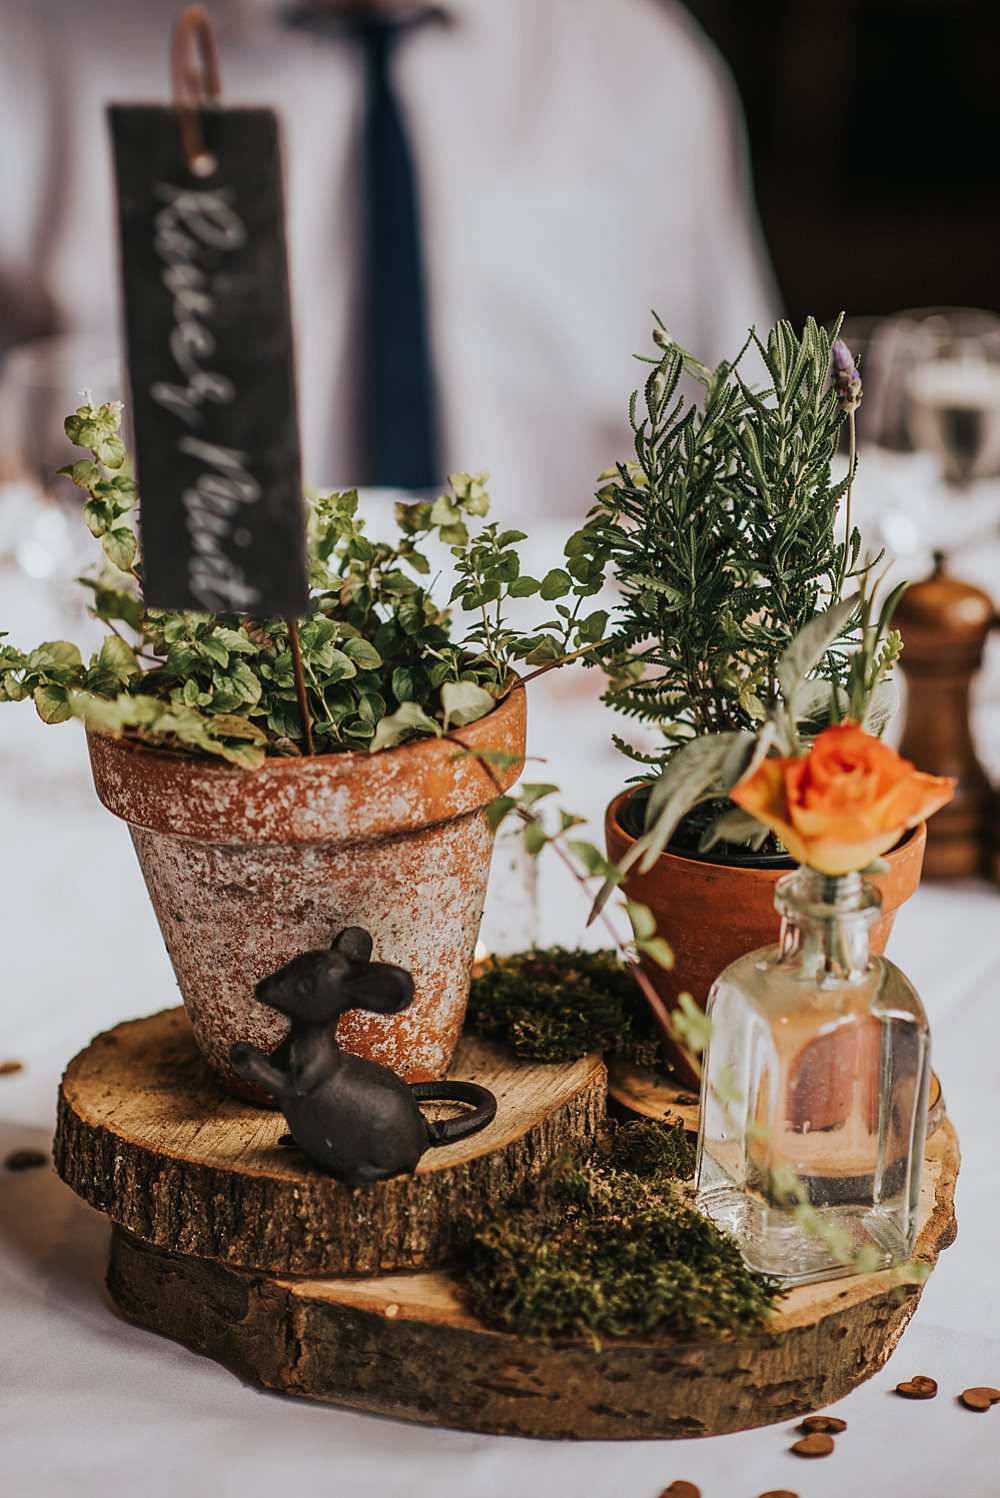 Centrepiece Table Decor Decoration Pot Plants Herbs Boho Rustic Wedding This and That Photography